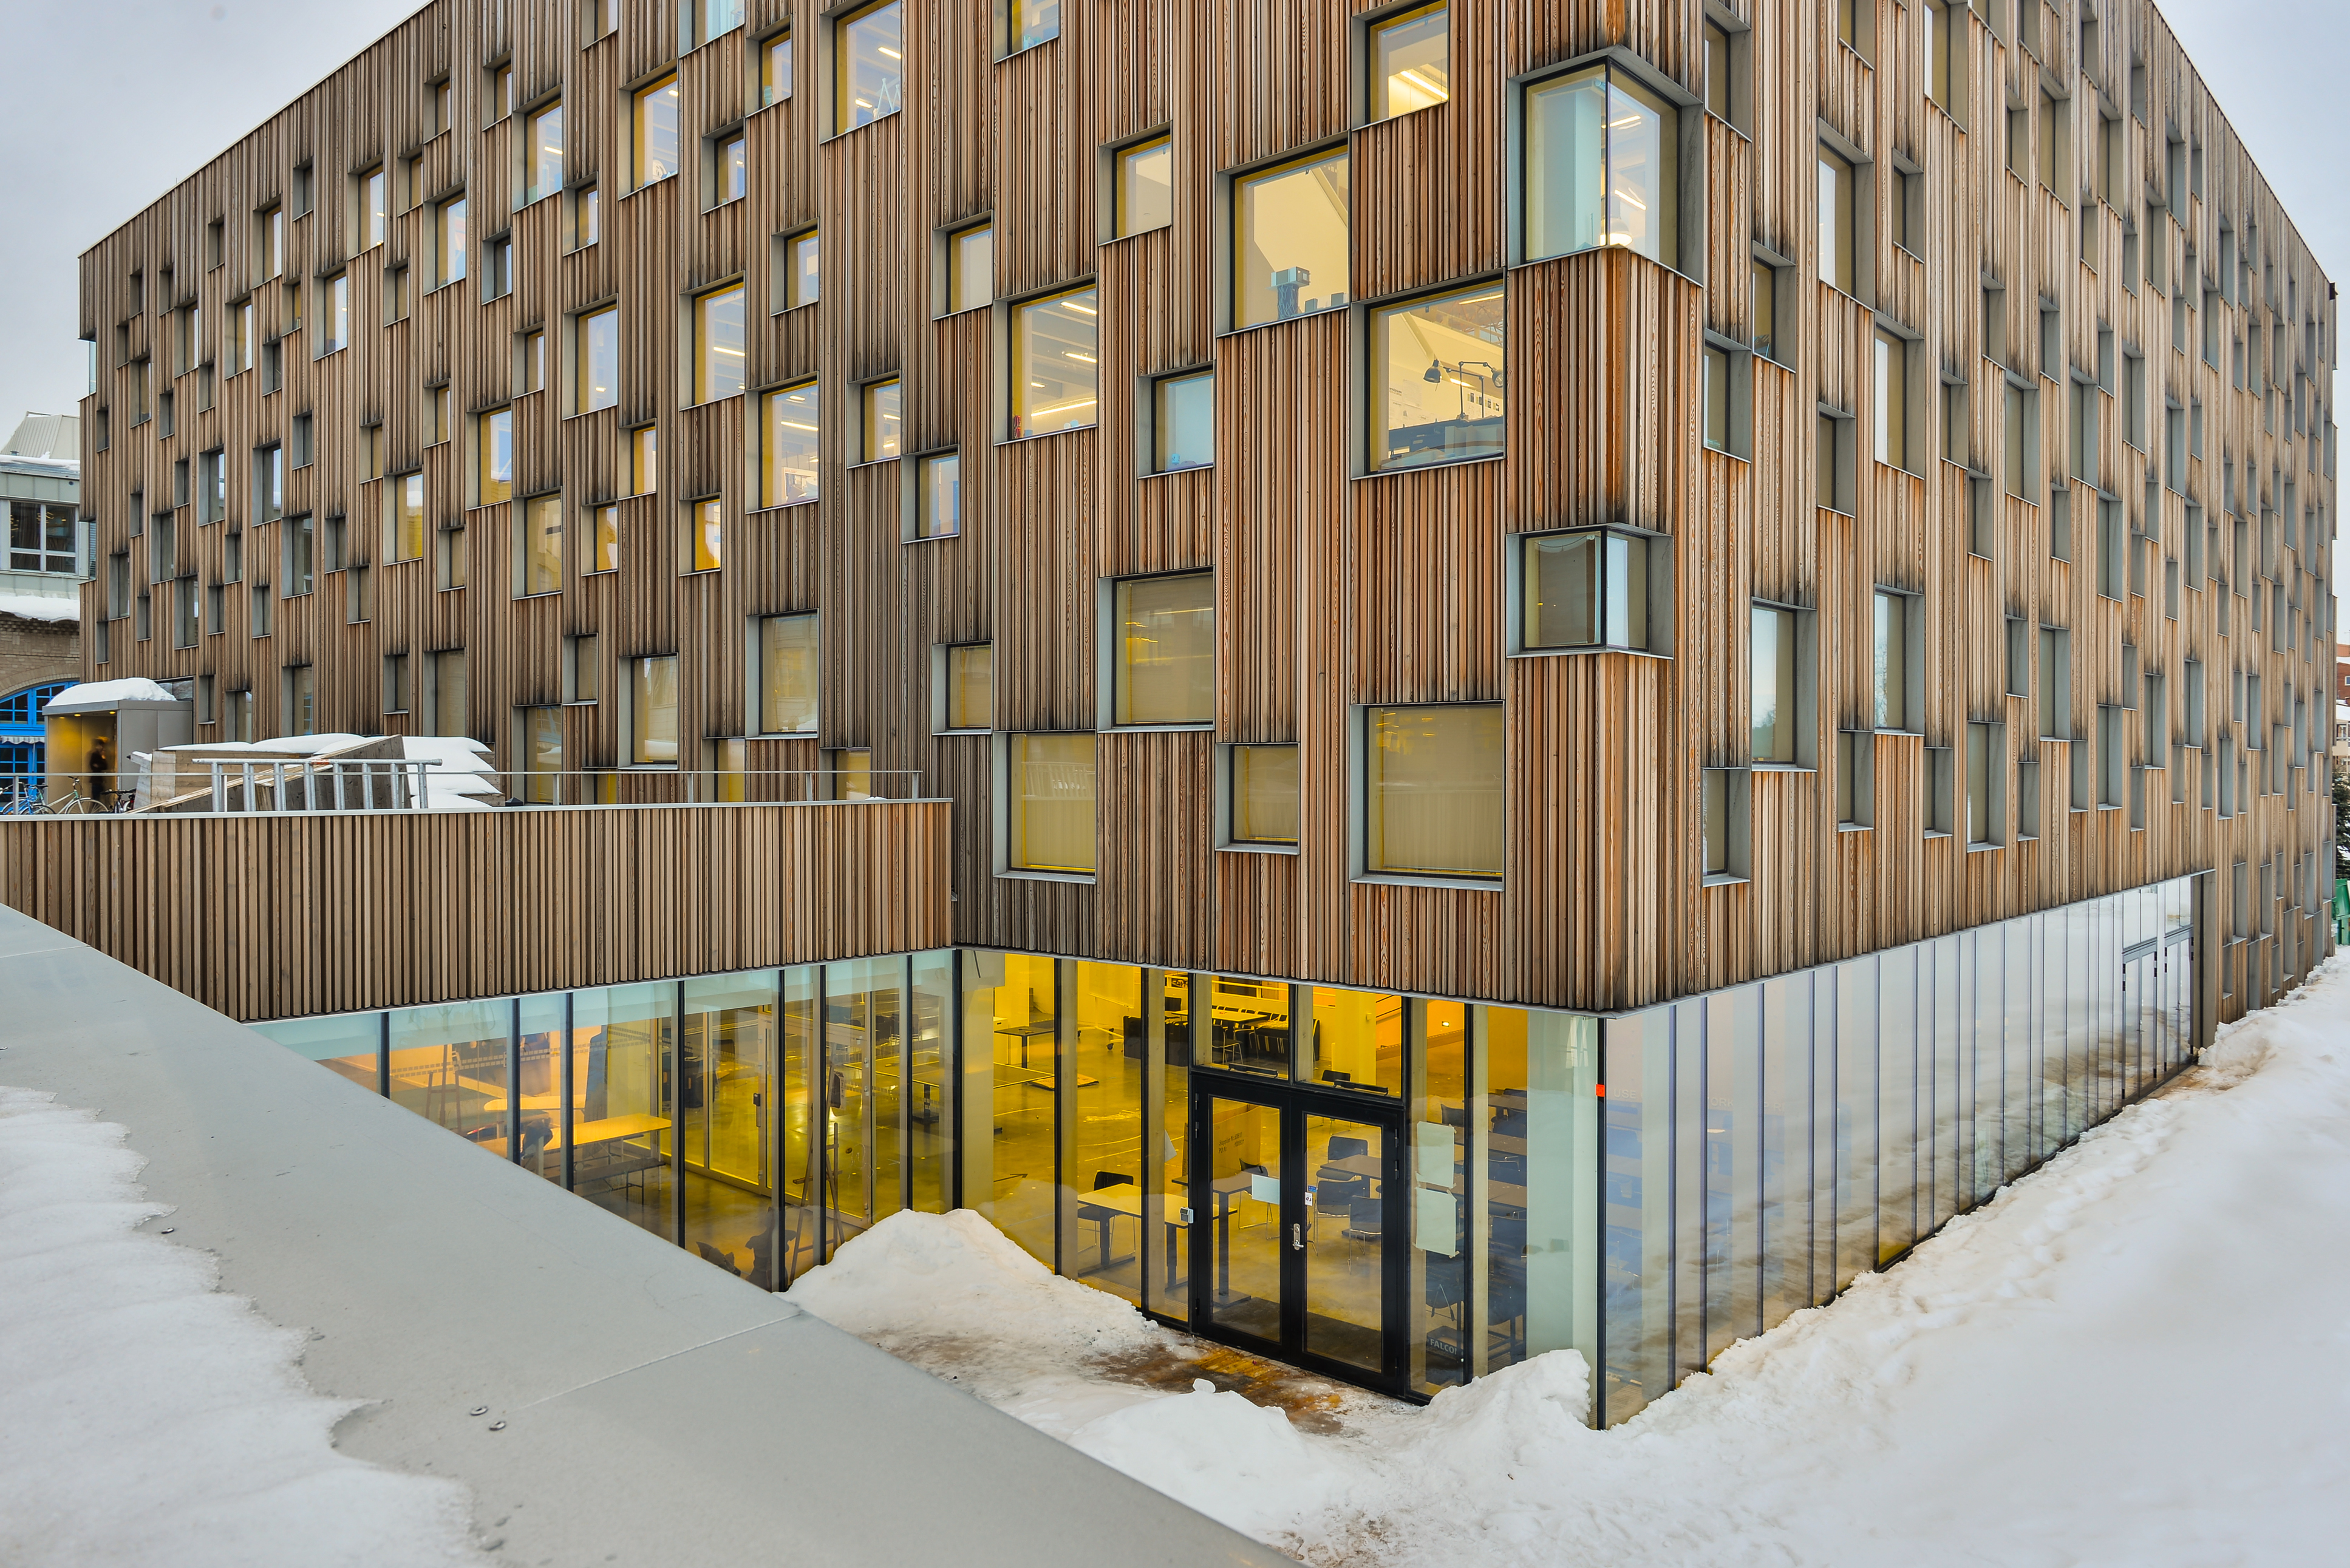 file:umeå school of architecture february 2013 02 - wikimedia